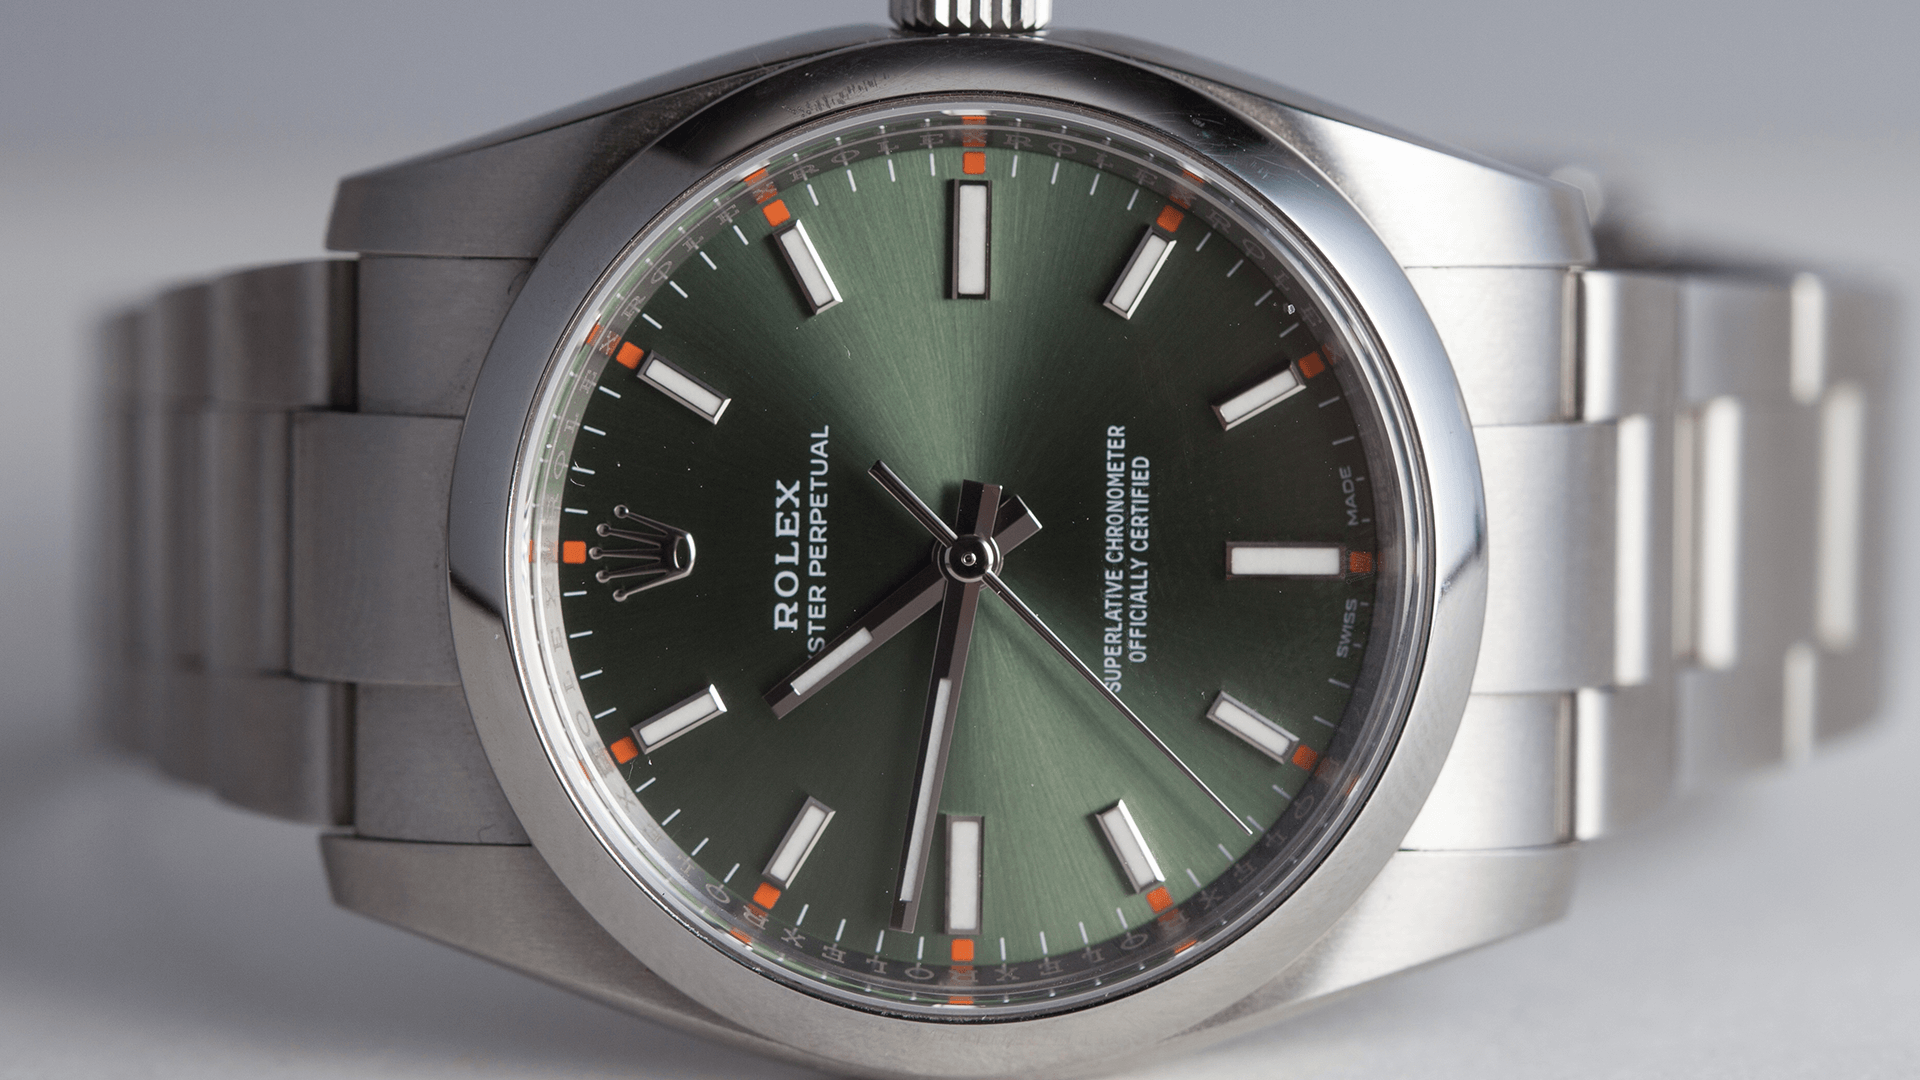 In The Metal: Rolex Oyster Perpetual, Tudor Quartz, & A Rolex Day-Date